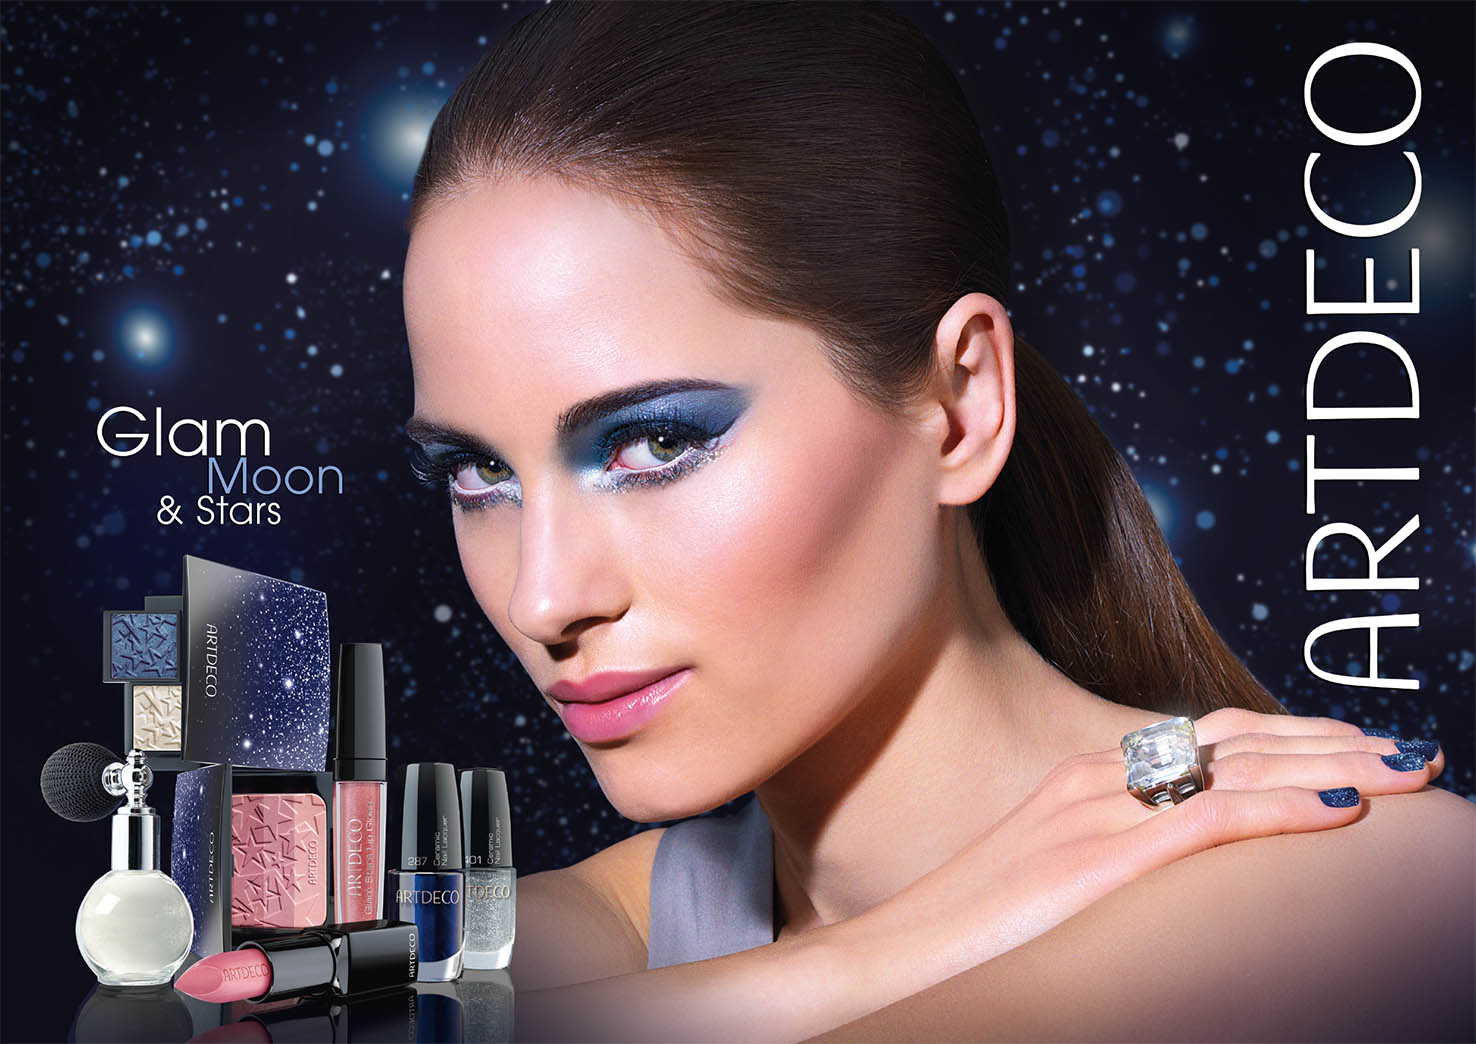 Glam moon e stars collection Artdeco